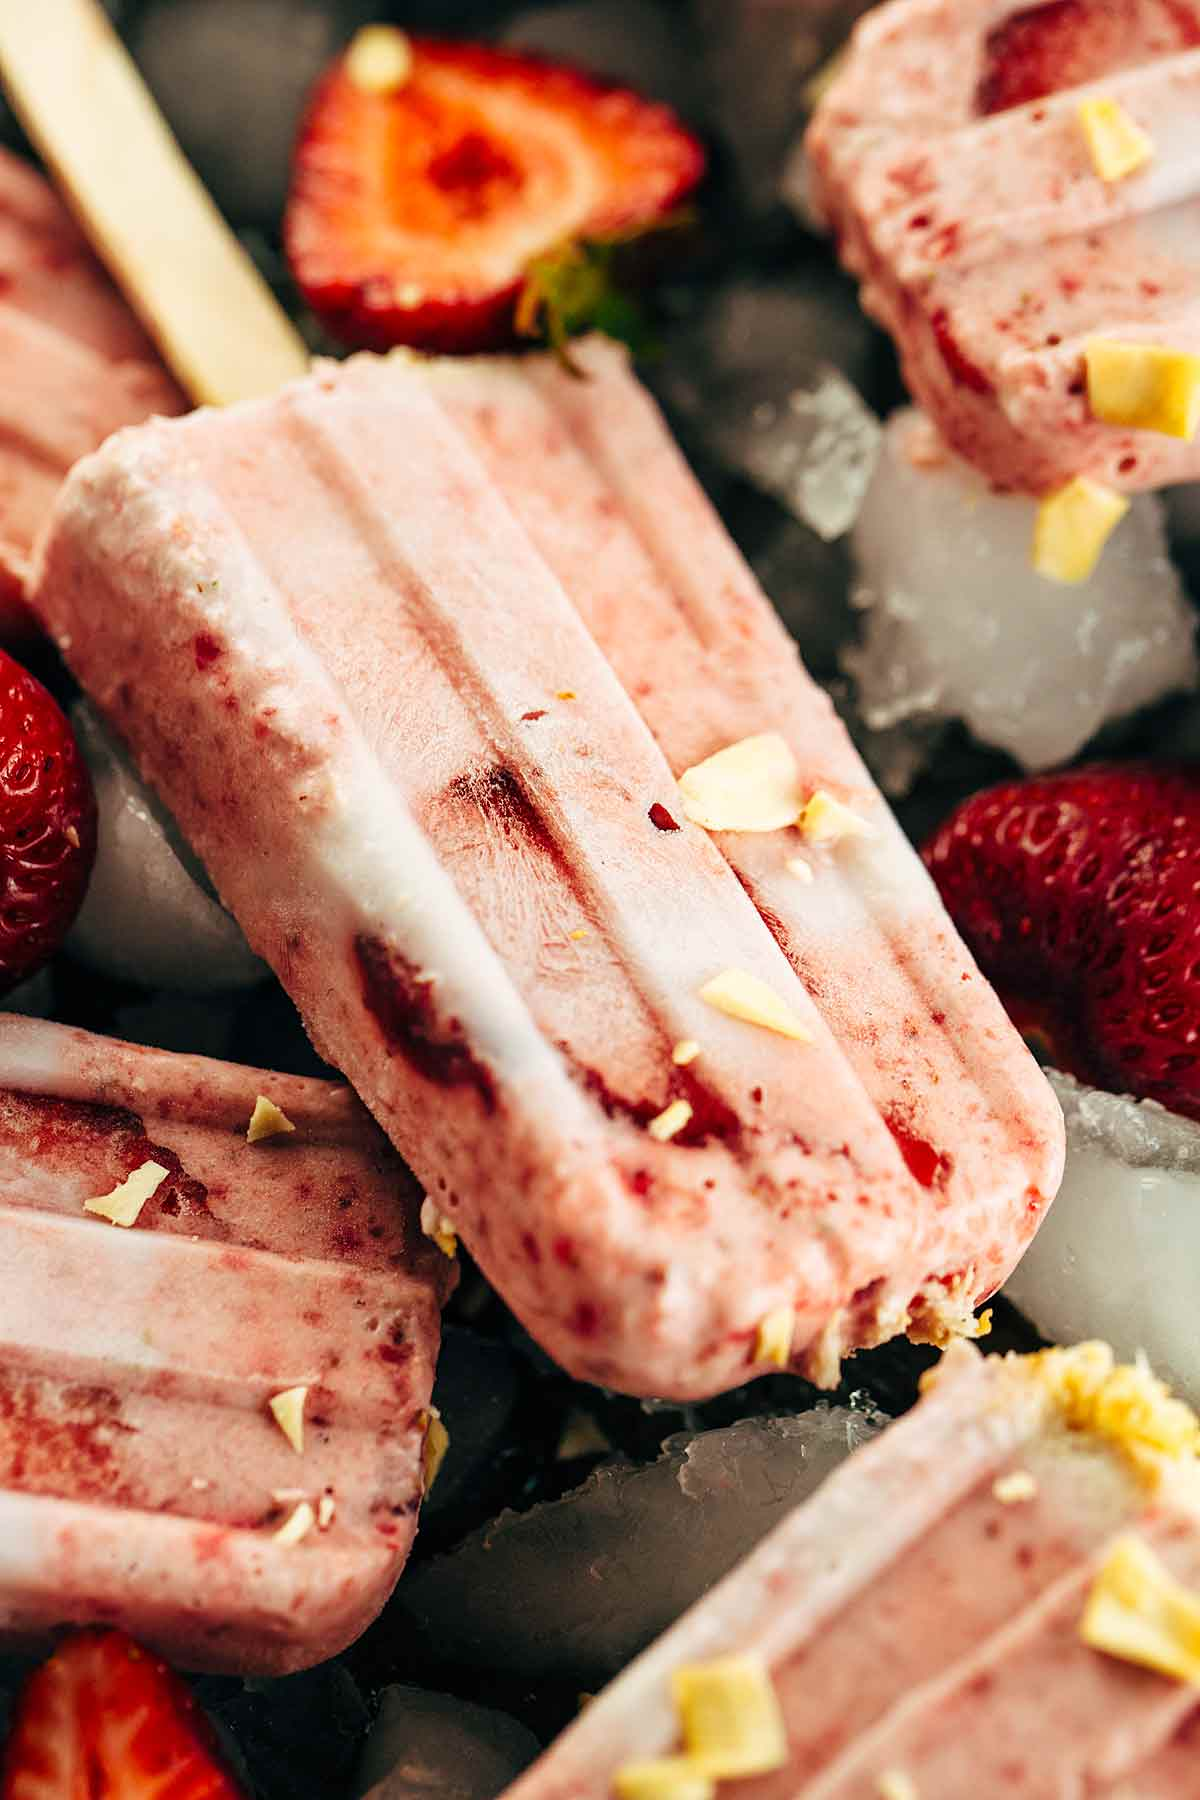 Vegan Strawberry Popsicles with Coconut - Only four simple ingredients for a refreshing and delicious frozen summertime treat! | www.jessicagavin.com